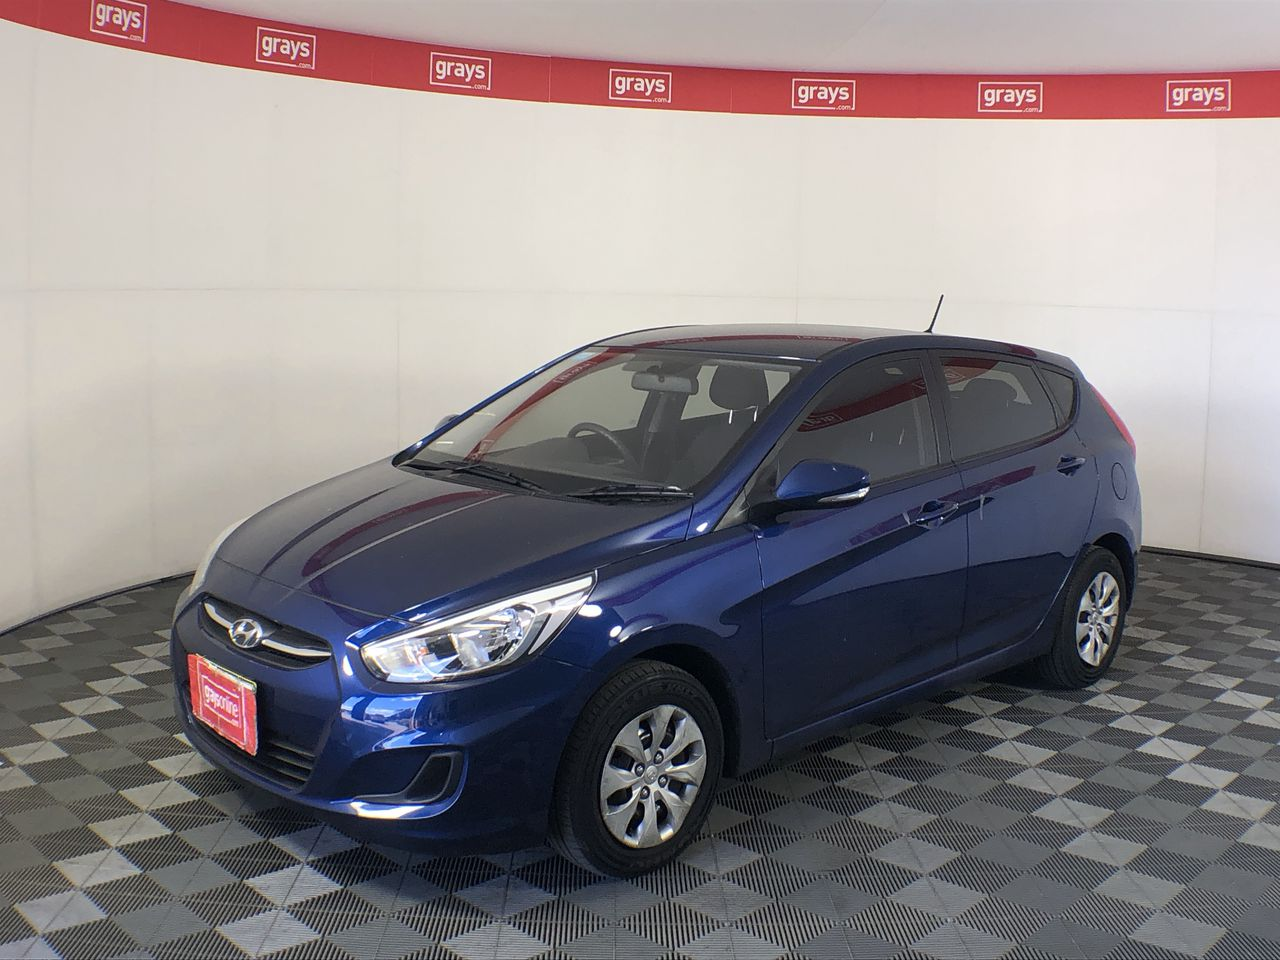 2015 Hyundai Accent Active RB Manual Hatchback 29,338 kms